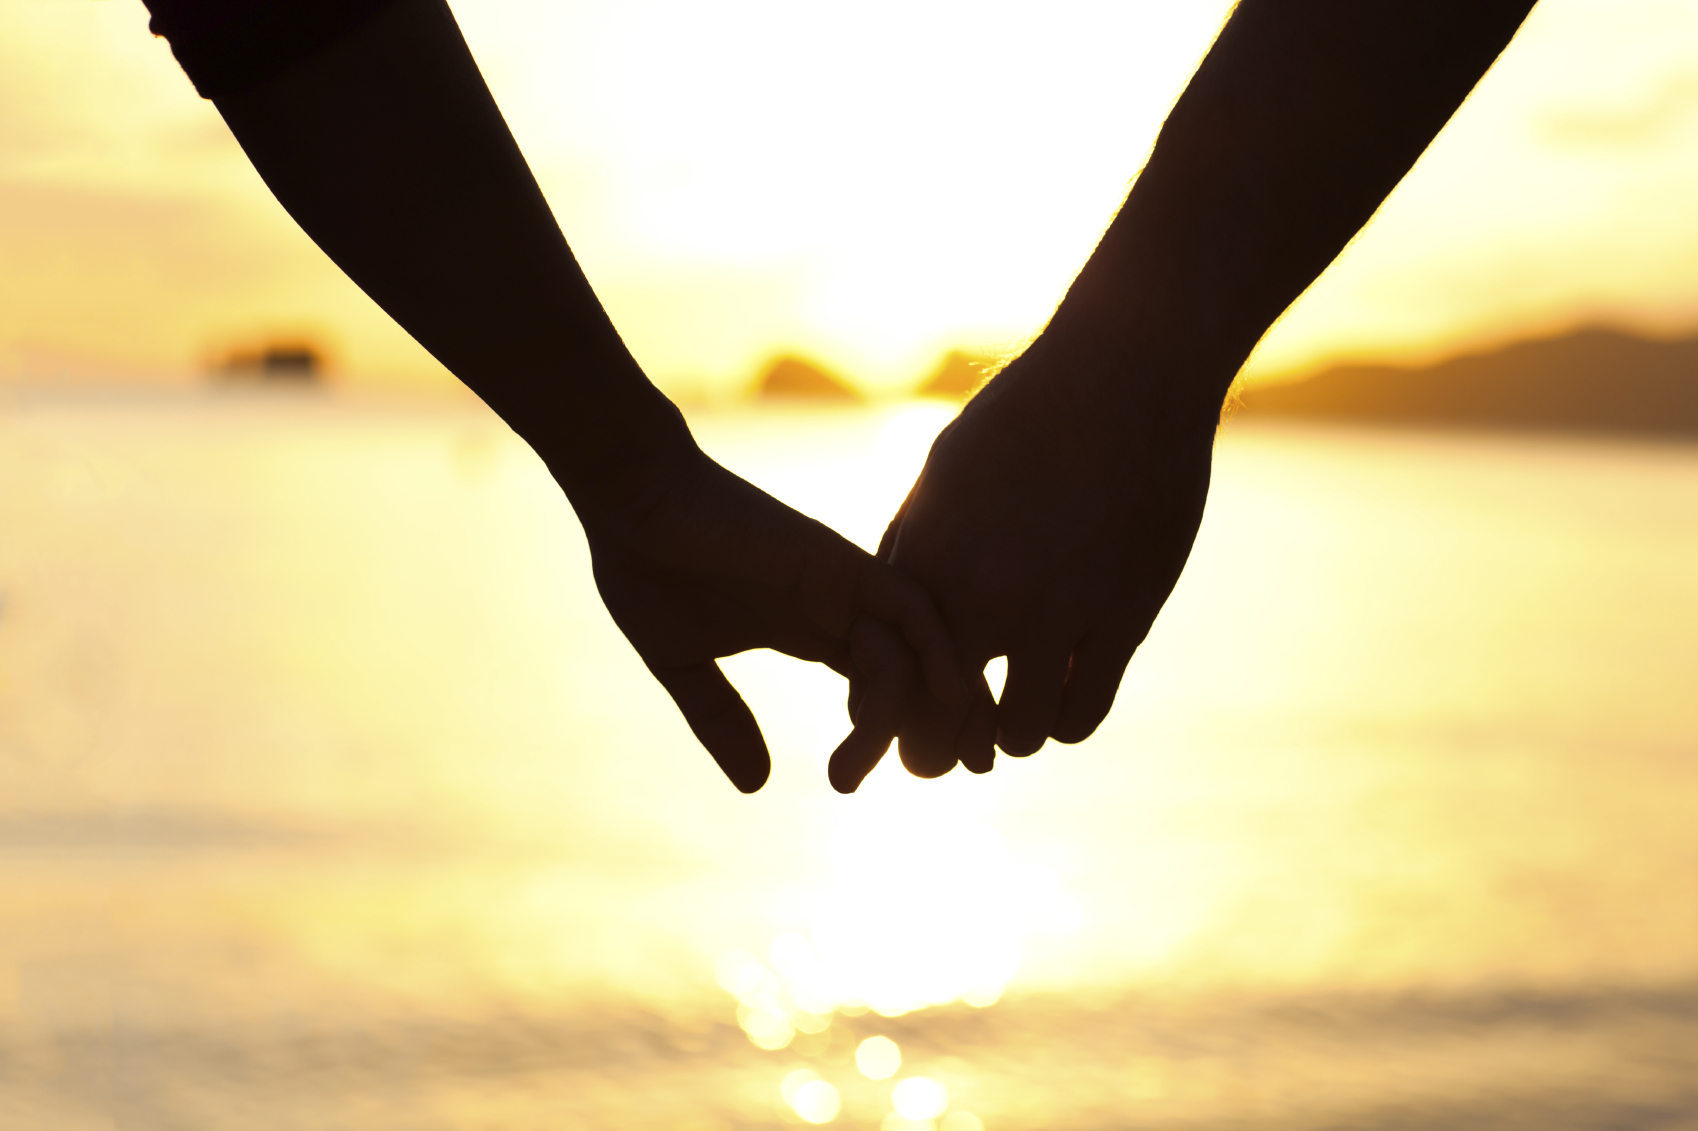 images-of-couples-holding-hands